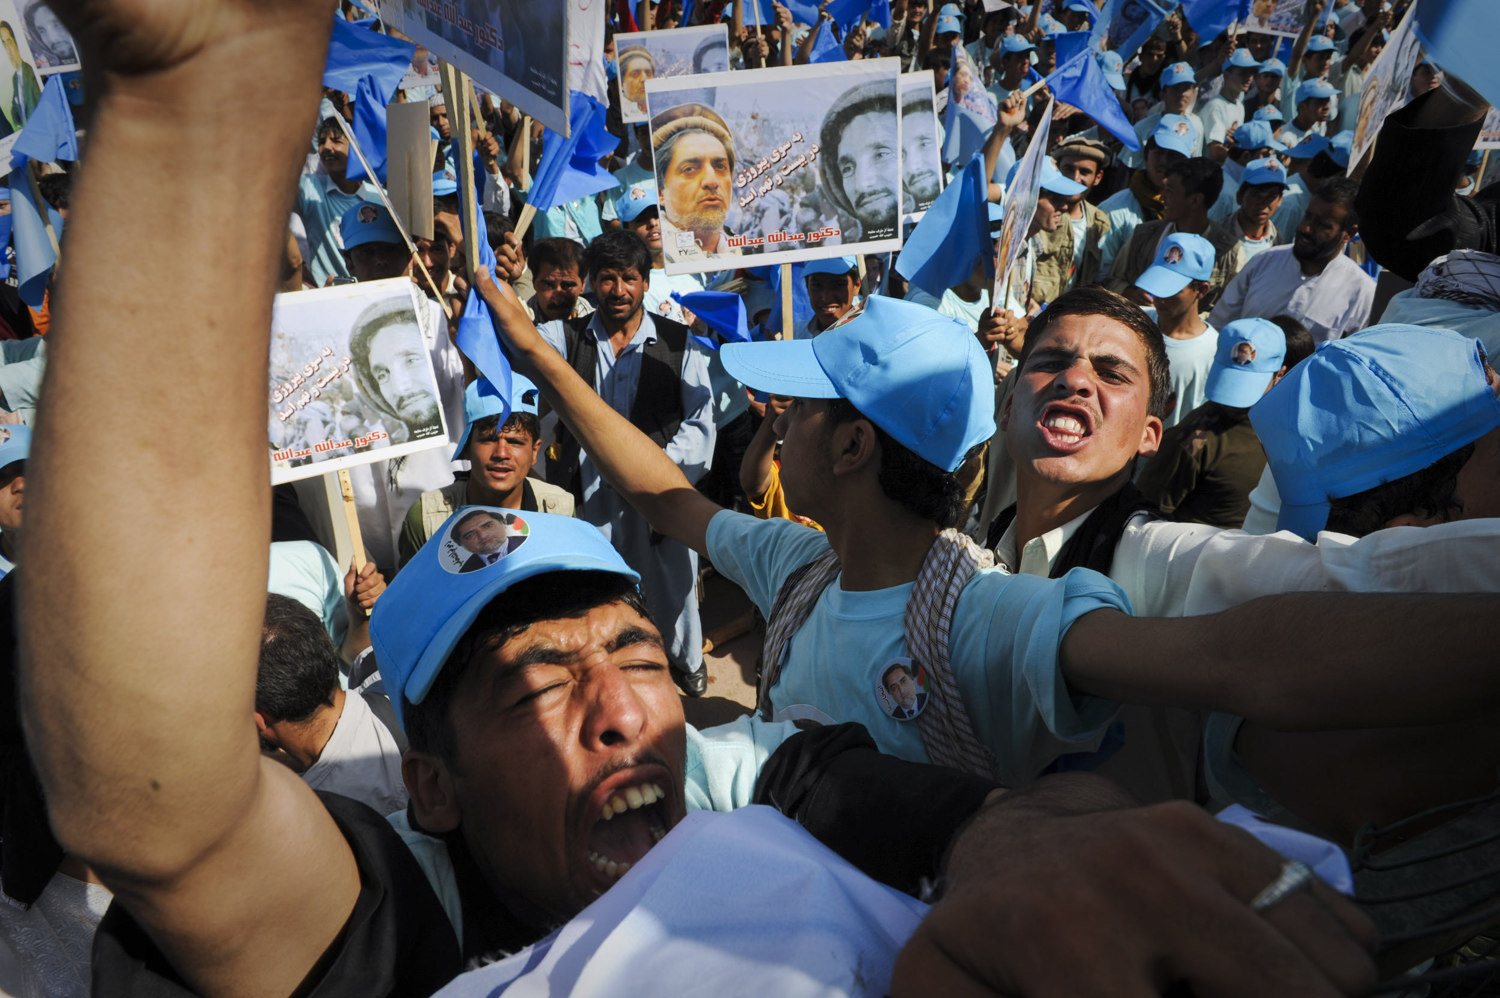 Afghan youth supporters of Dr. Abdullah Abdullah at a political rally at the Kabul Stadium in Kabul Afghanistan on August 17th, 2009. the country later went on to elect incumbent president Hamid Karzai after months of debate over a tampered election.